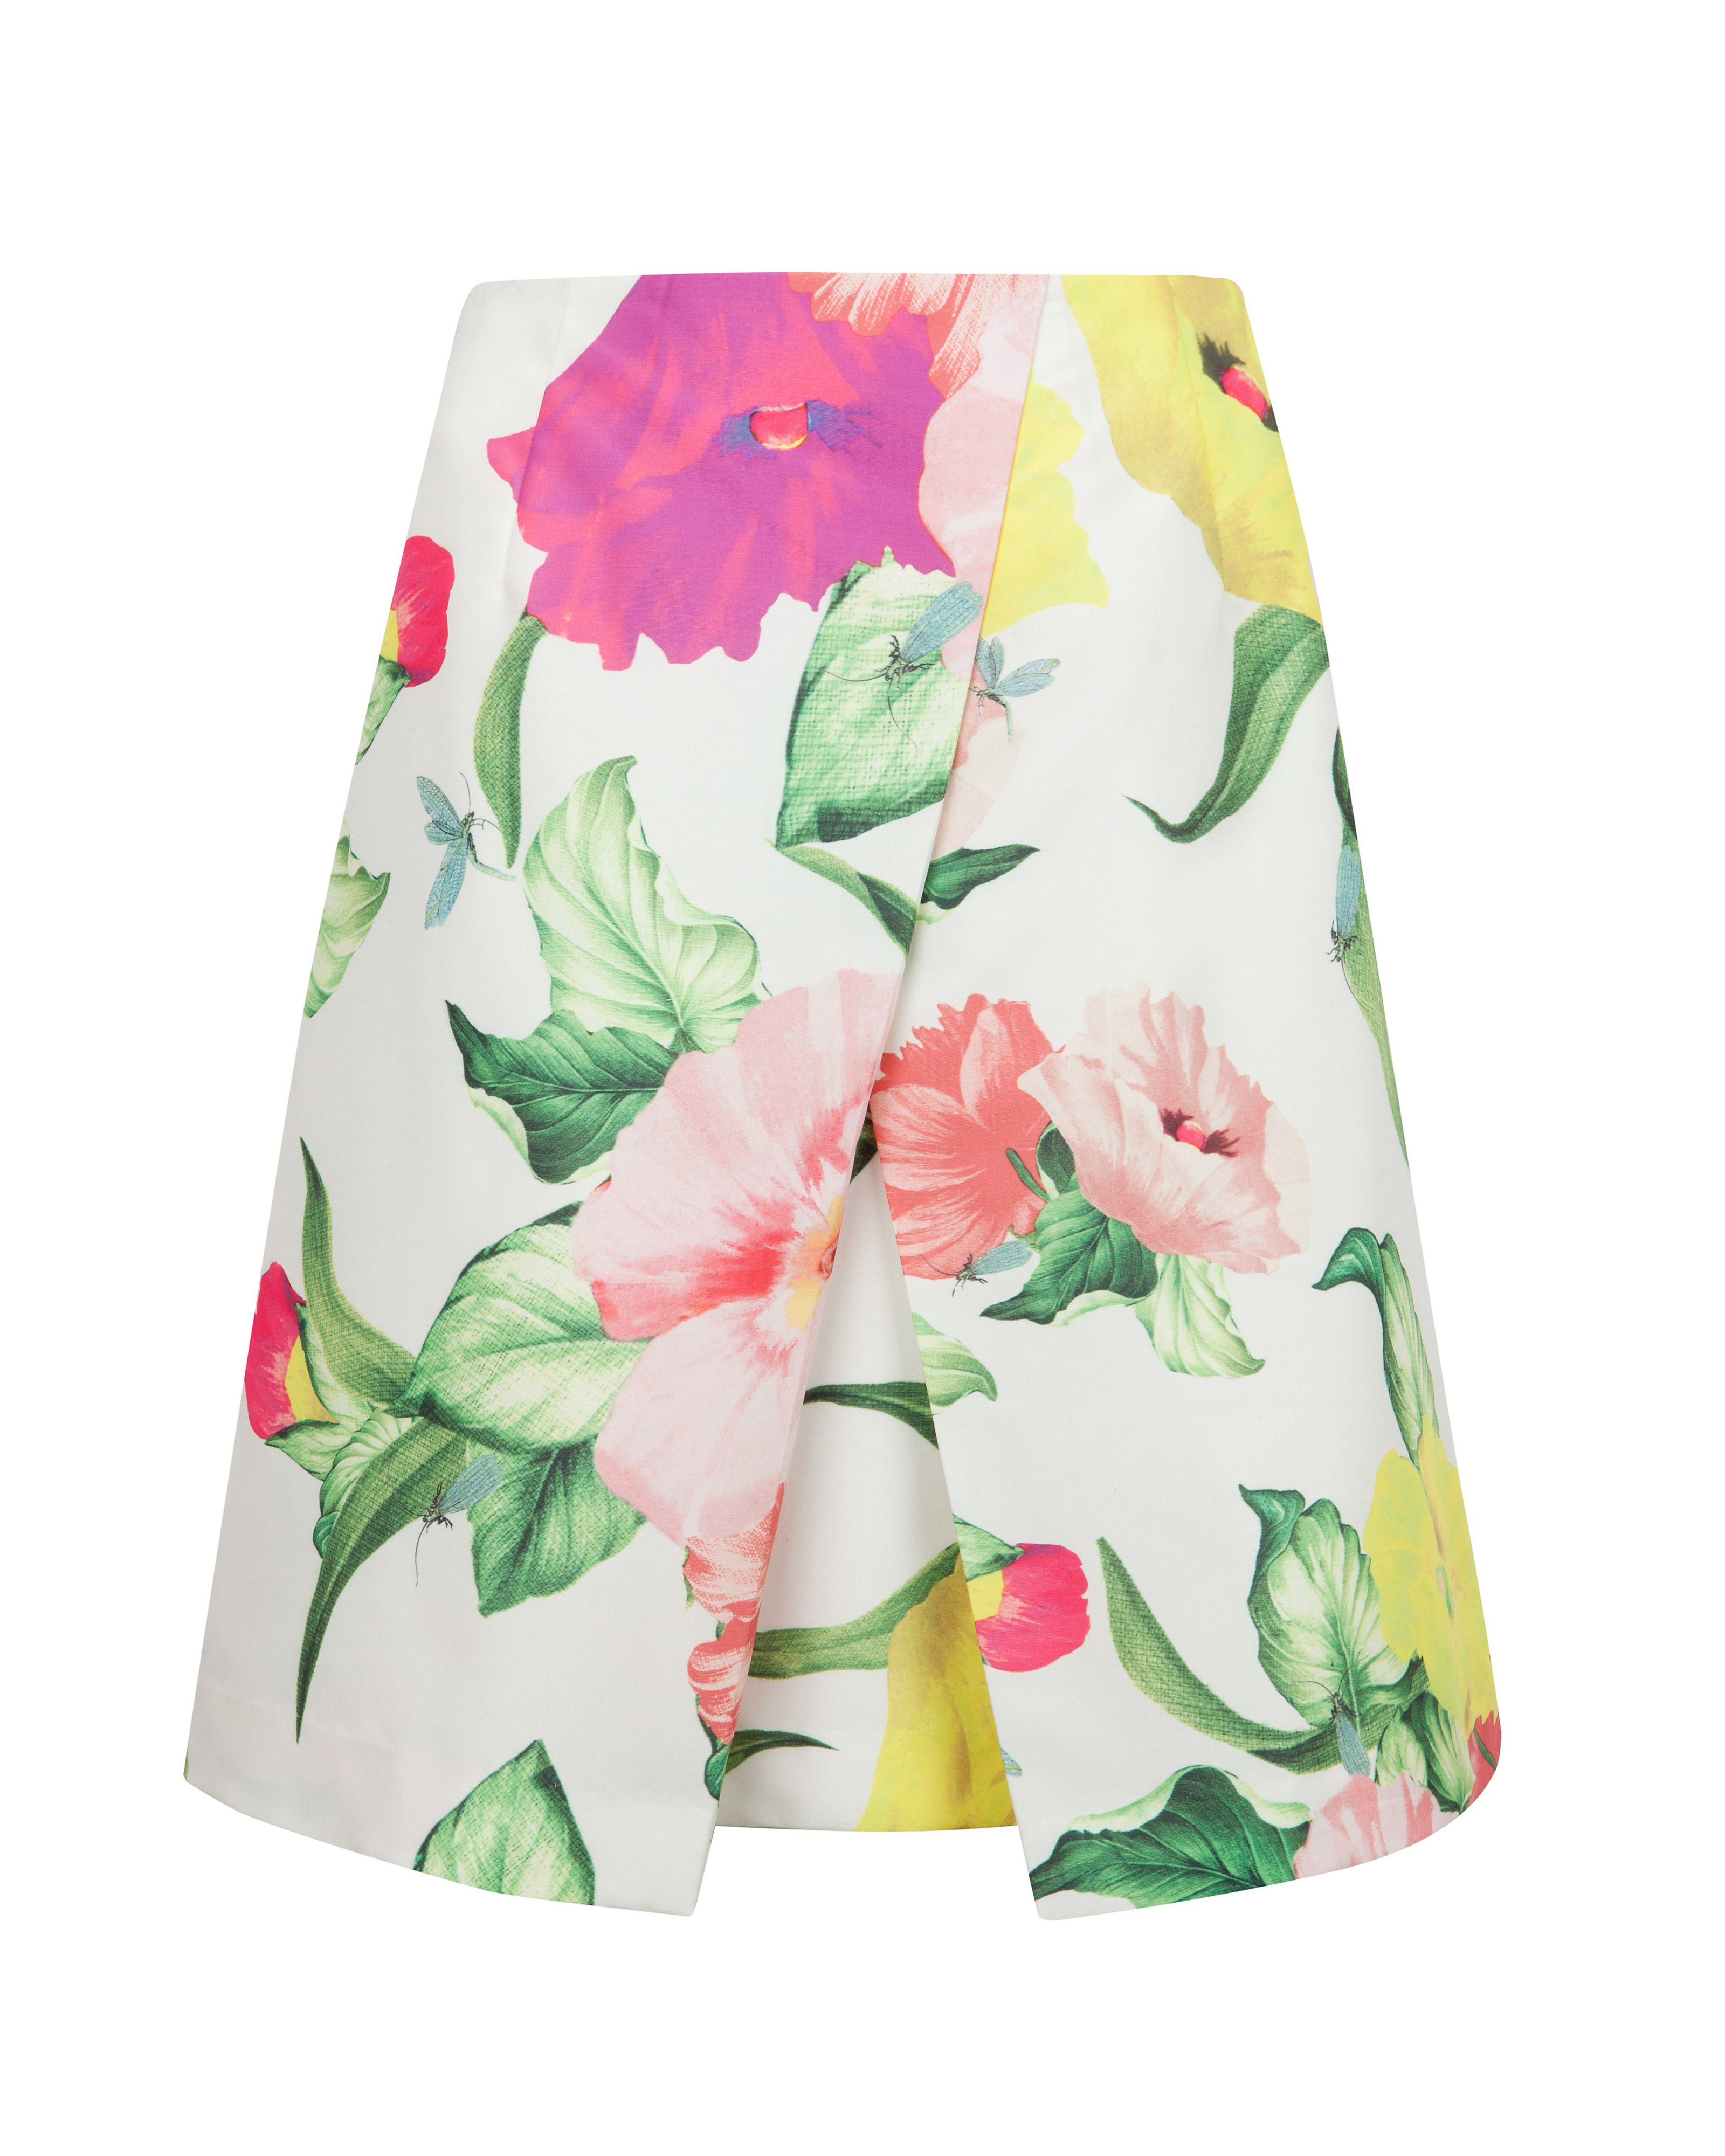 Isabeli flowers at high tea skirt